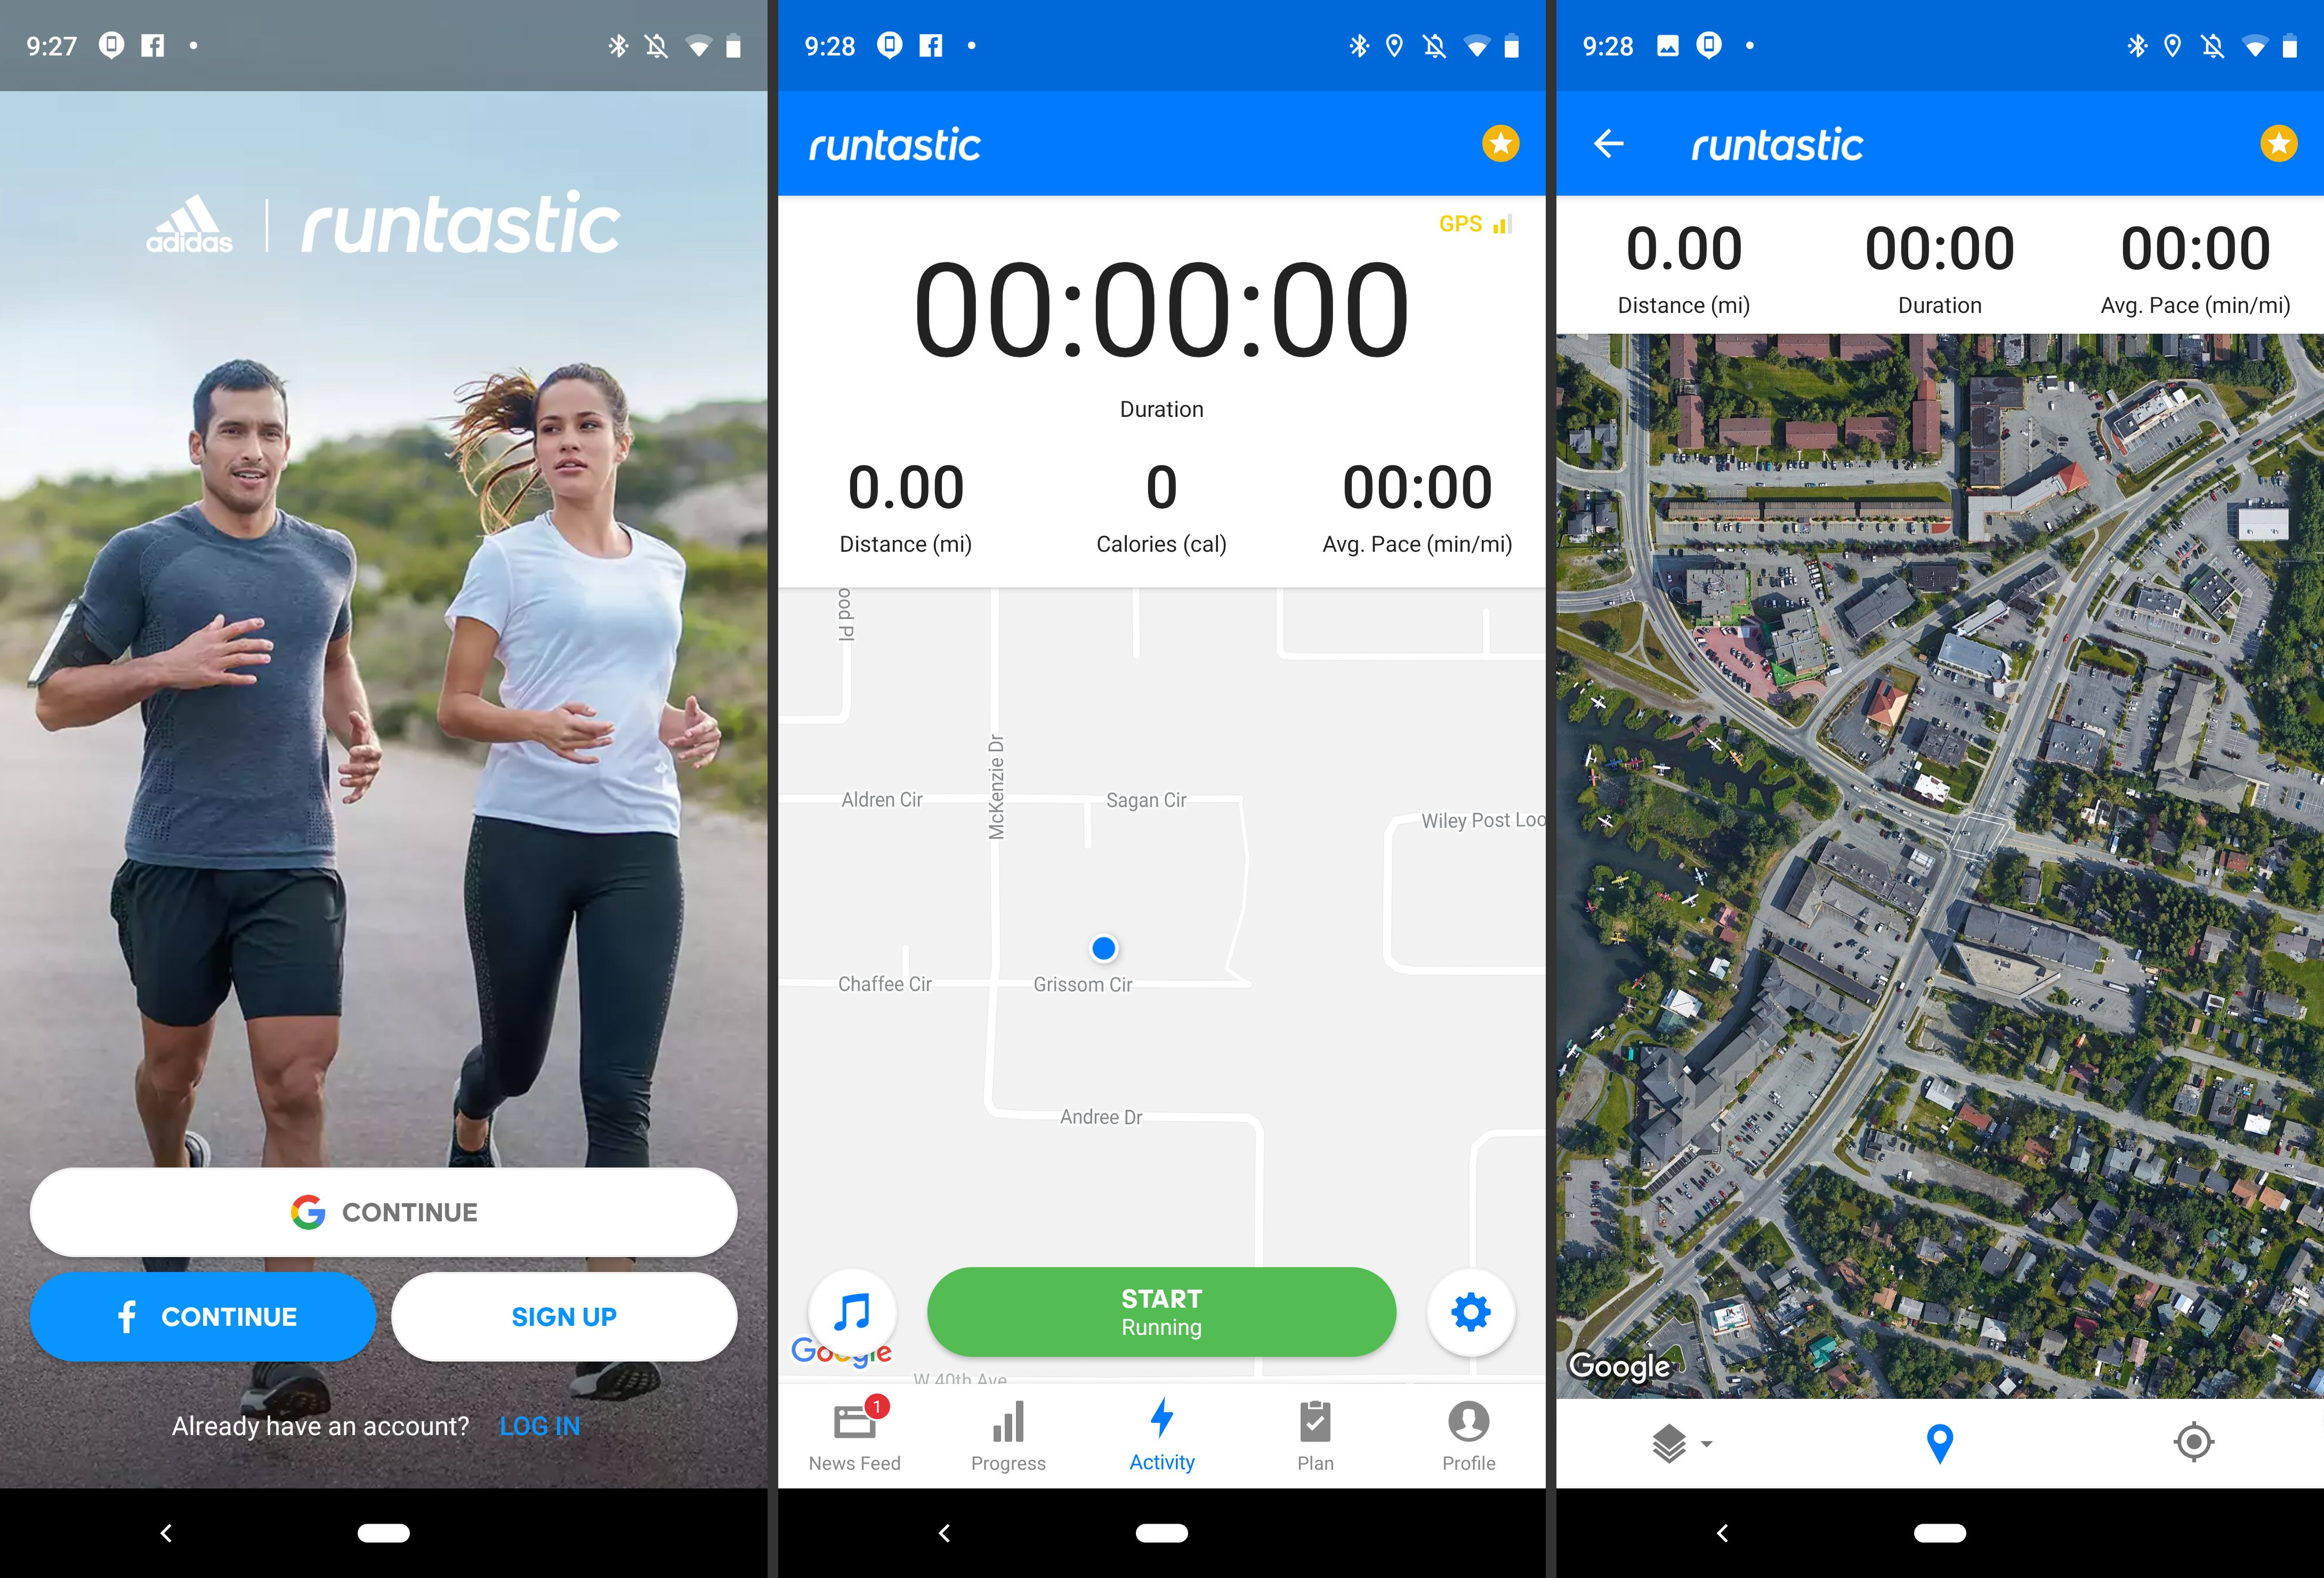 Runtastic app on Android